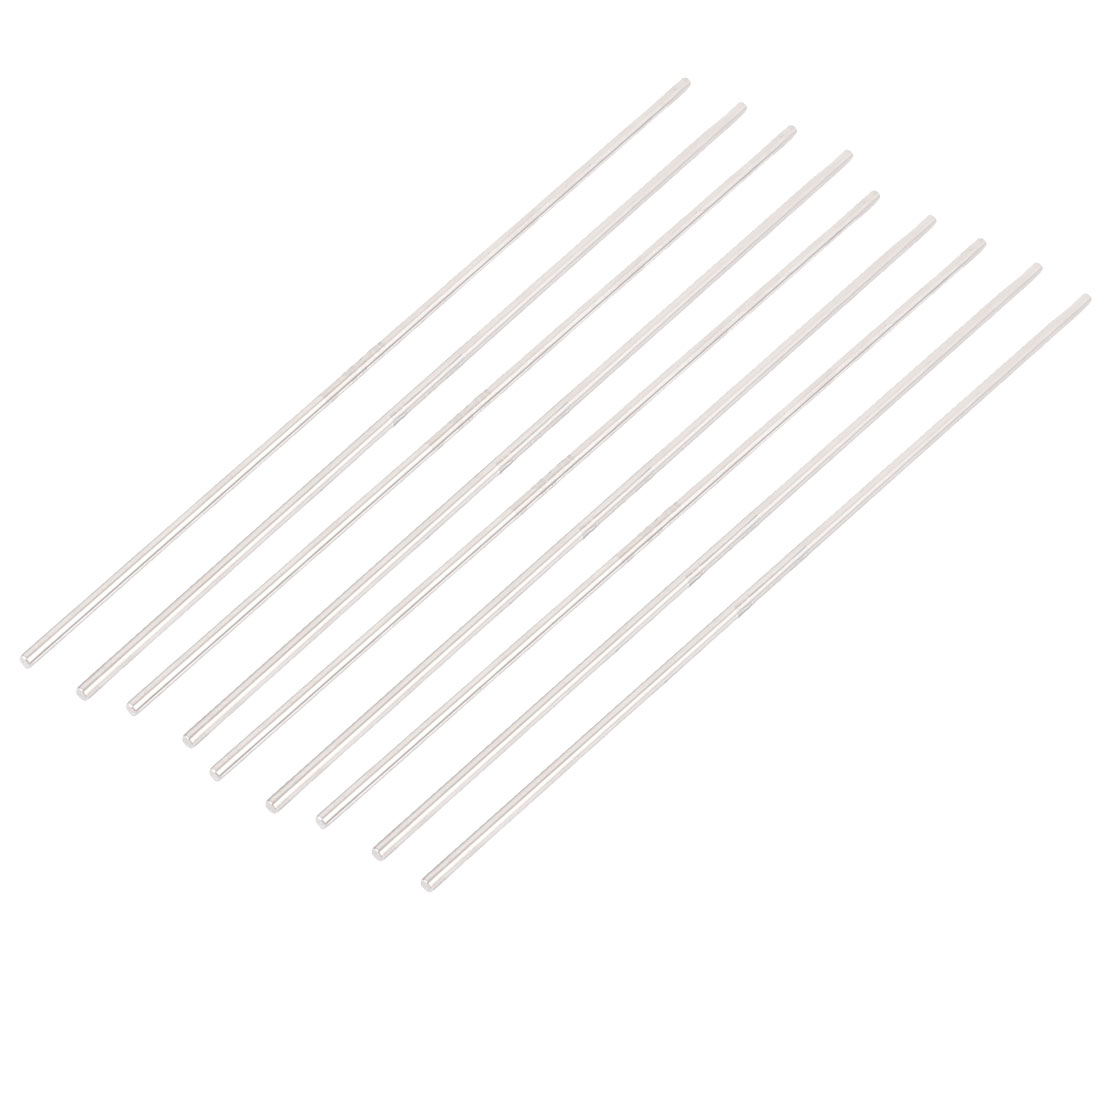 9 Pcs 3mm x 200mm Stainless Steel Solid Round Rod Bar